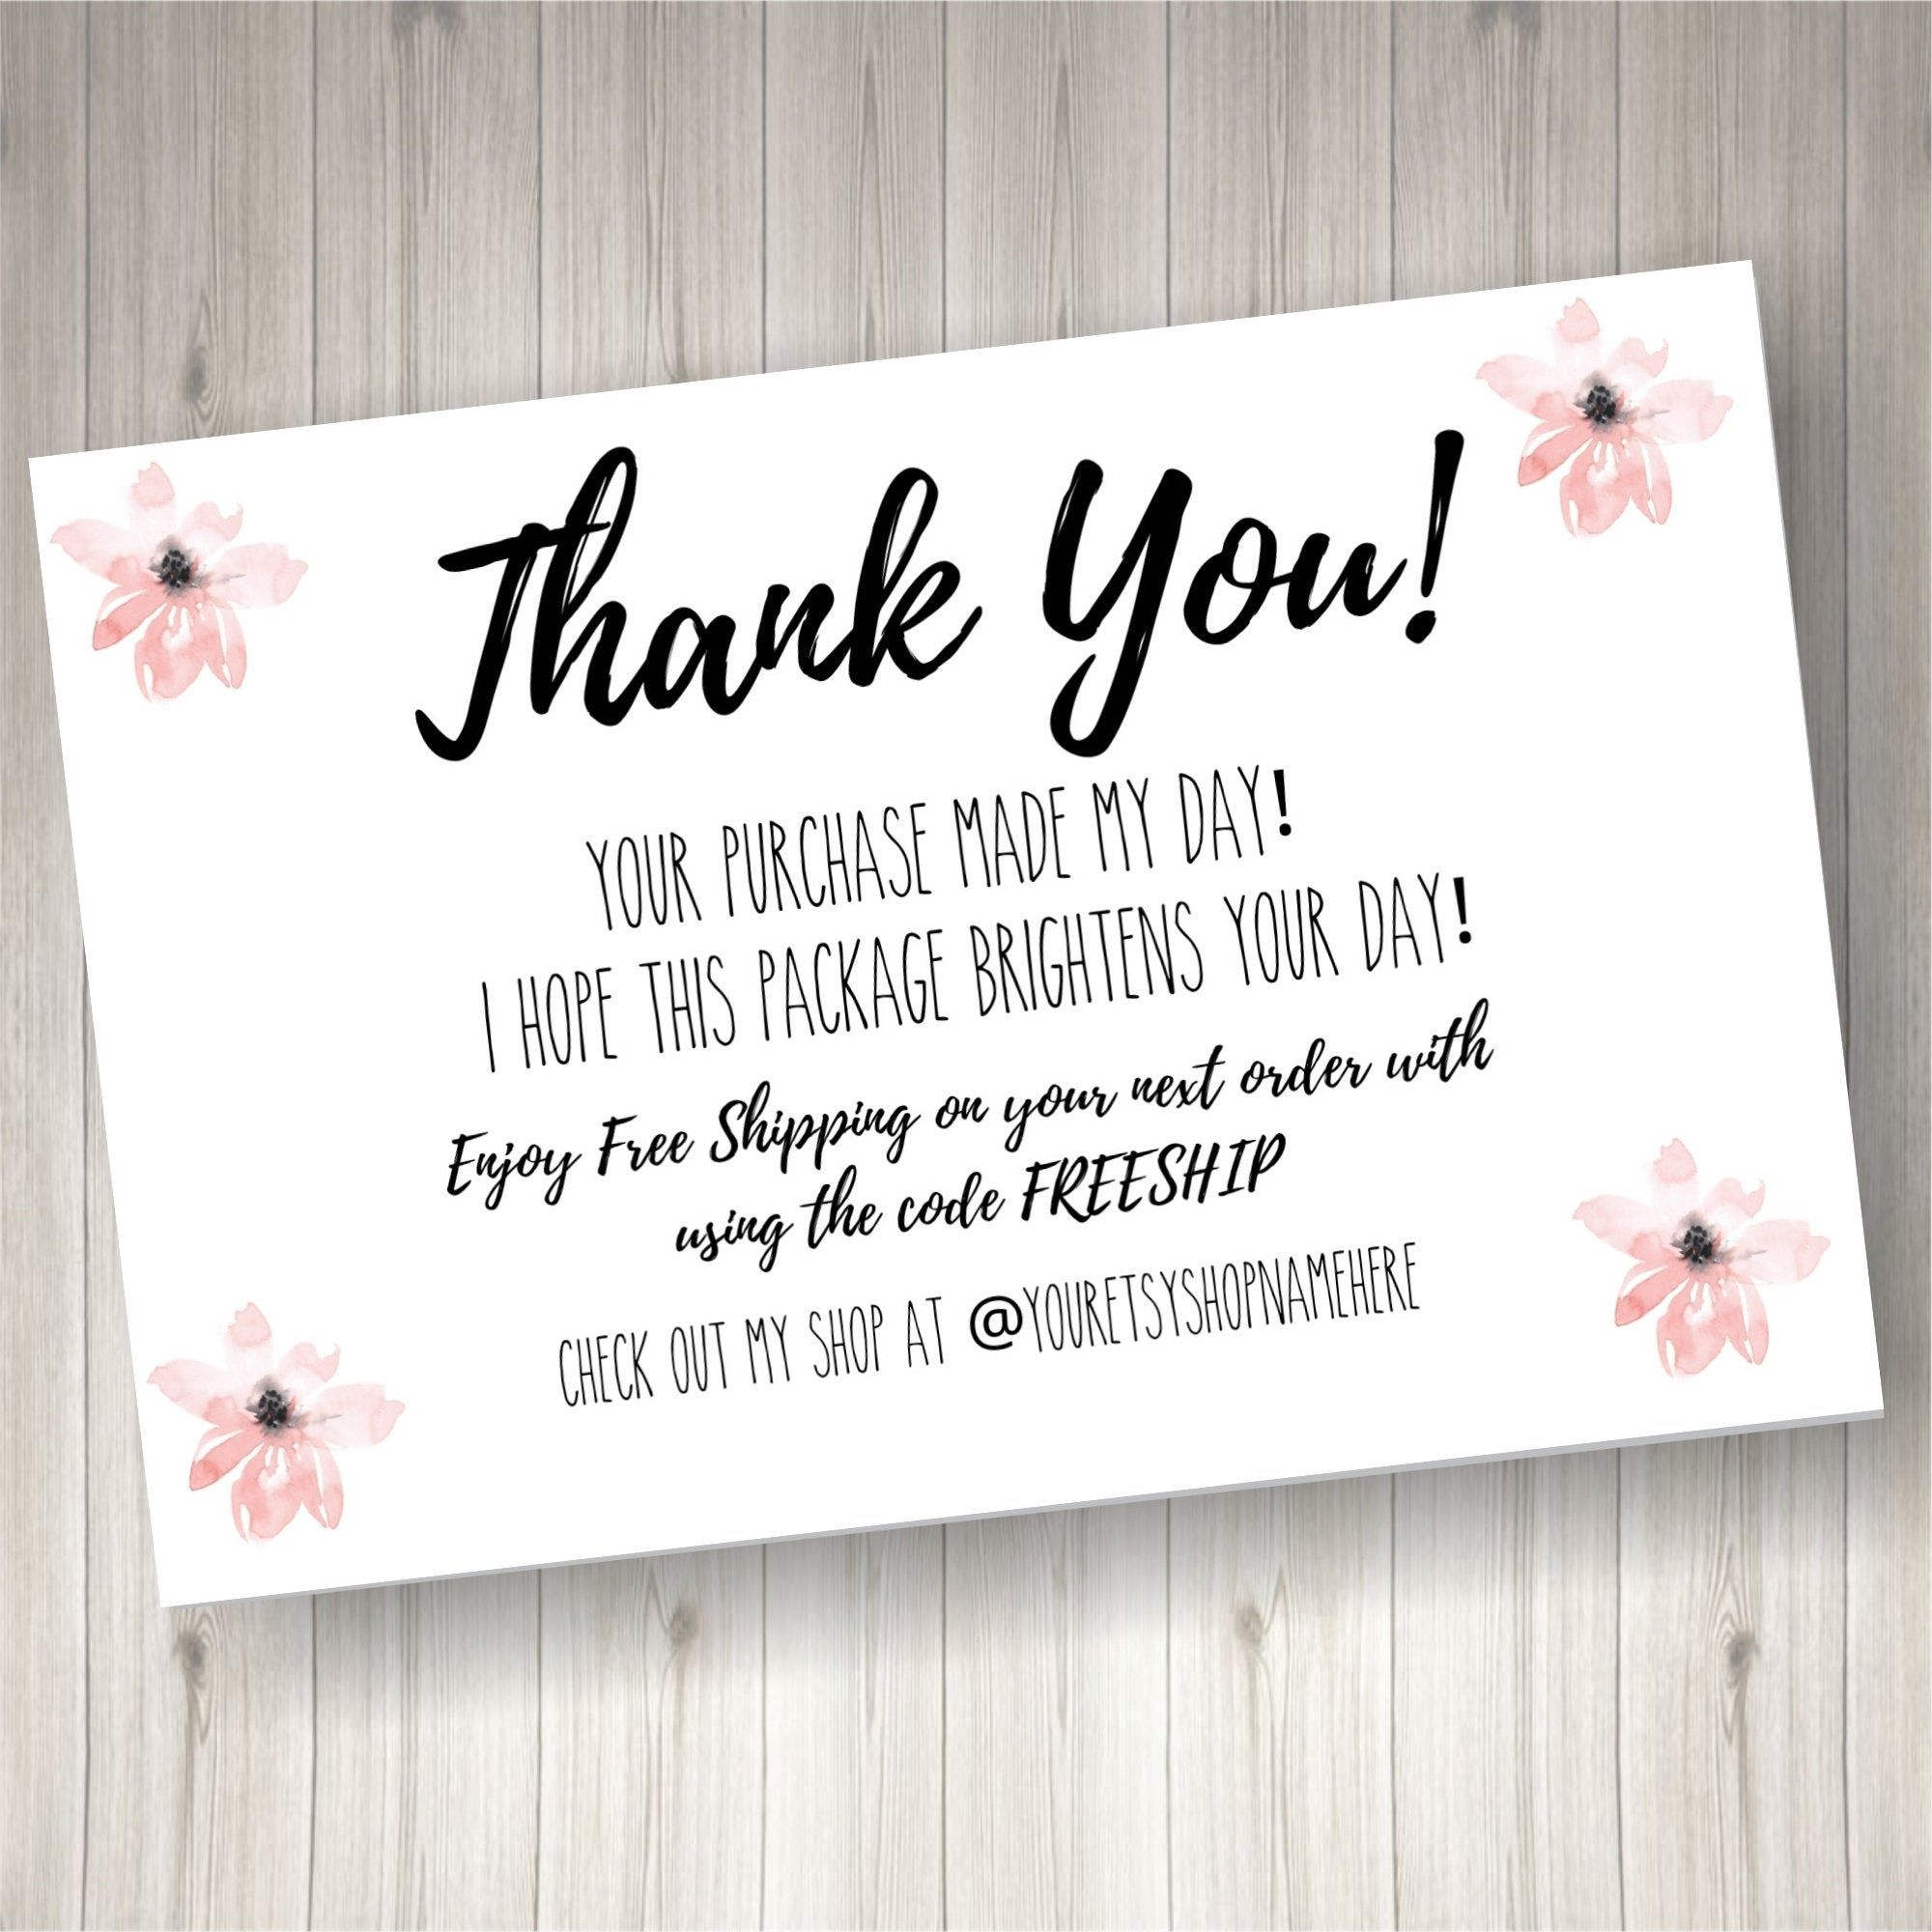 Printed Thank You Cards For Small Business 60 Count Pink Etsy Print Thank You Cards Business Thank You Cards Small Business Cards